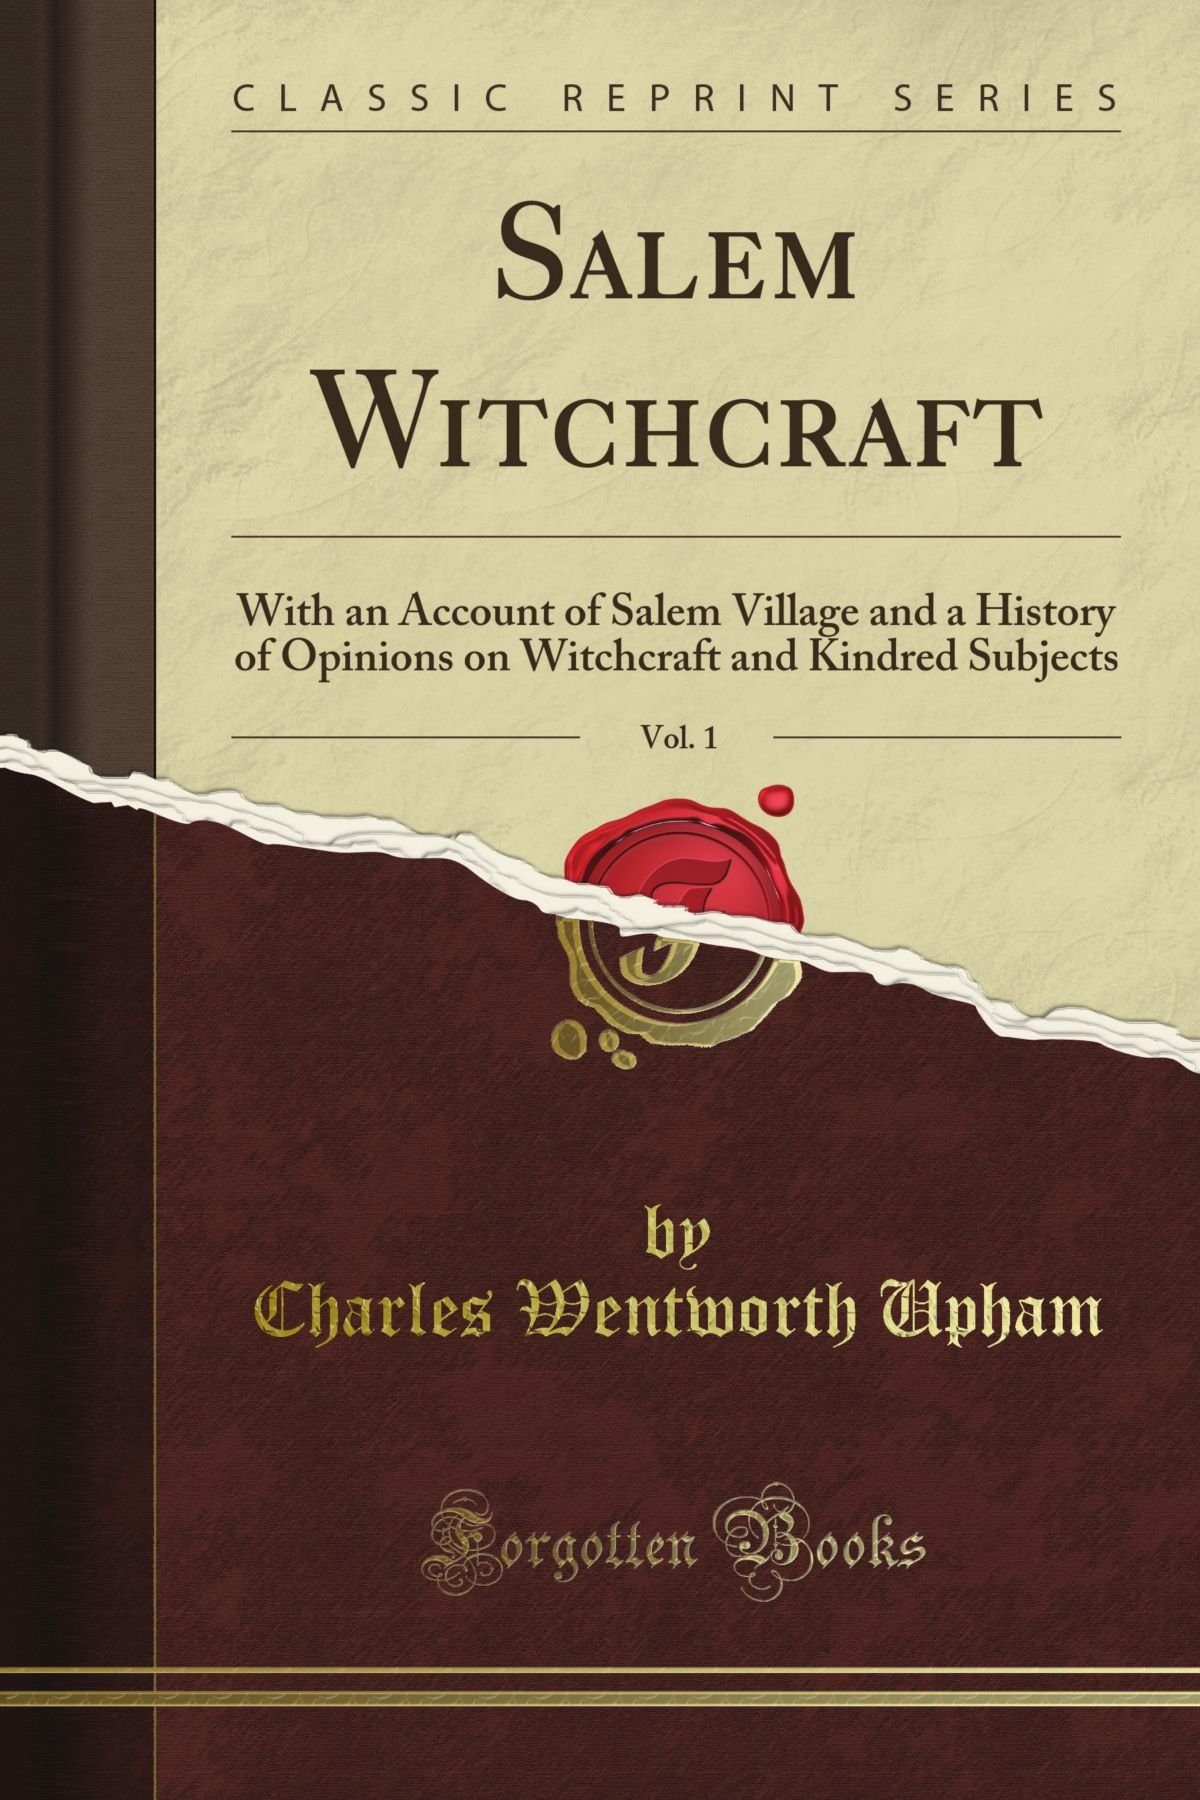 Download Salem Witchcraft, Vol. 1: With an Account of Salem Village and a History of Opinions on Witchcraft and Kindred Subjects (Classic Reprint) PDF